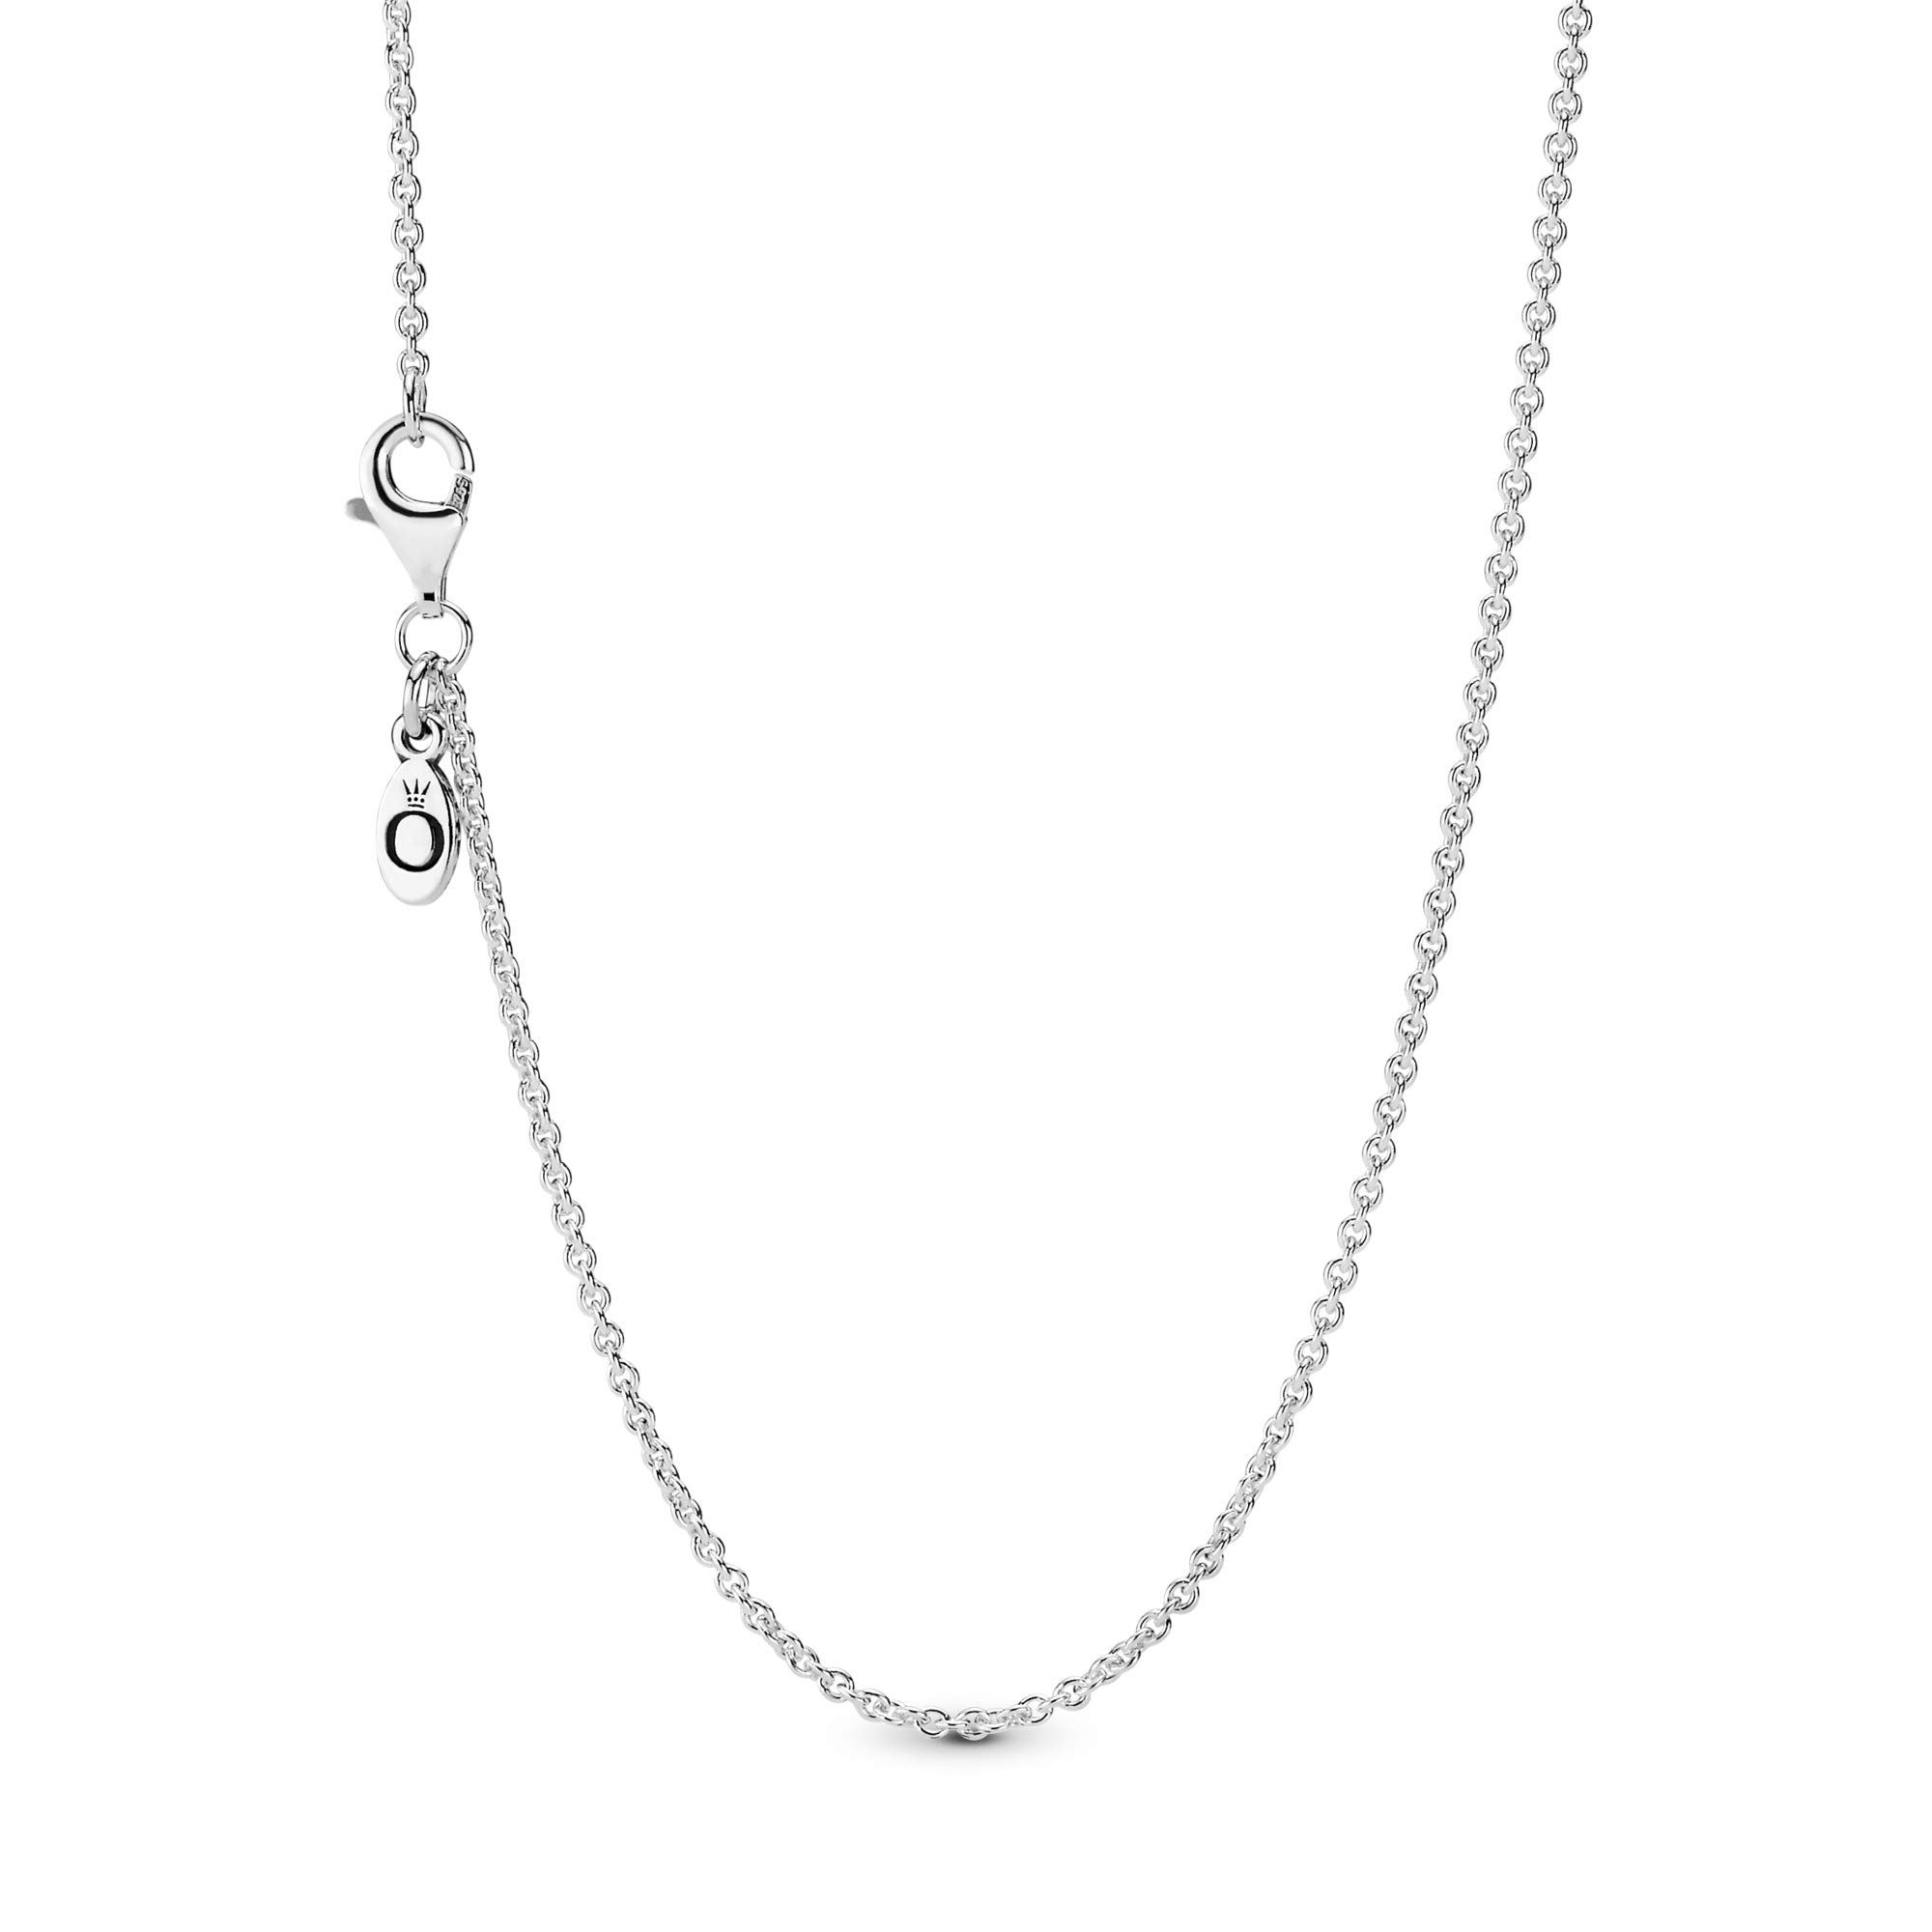 Jewelry Classic Cable Chain Sterling Silver Necklace